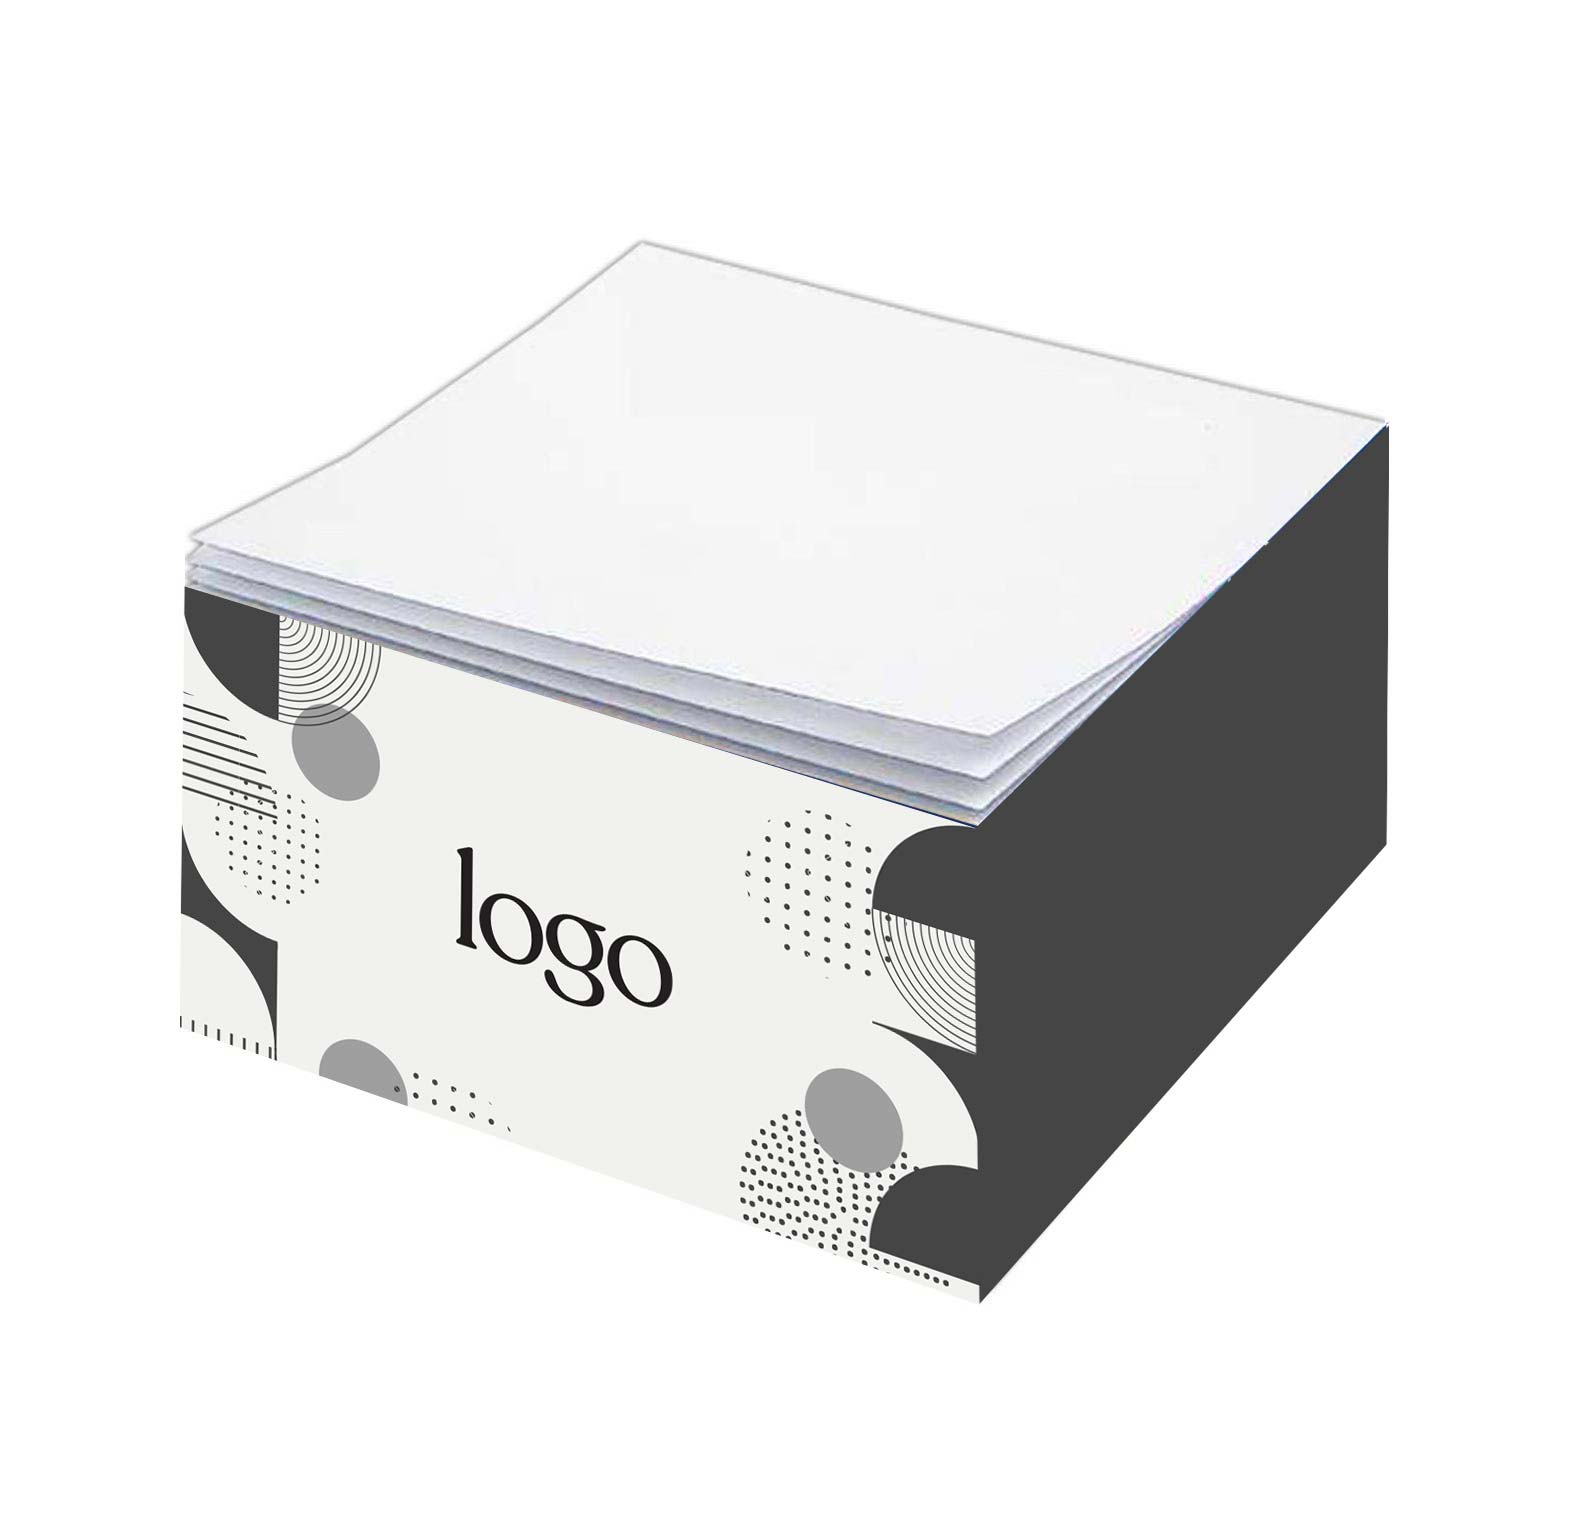 302759 half cube note pad full color printed sides no imprint on top sheet